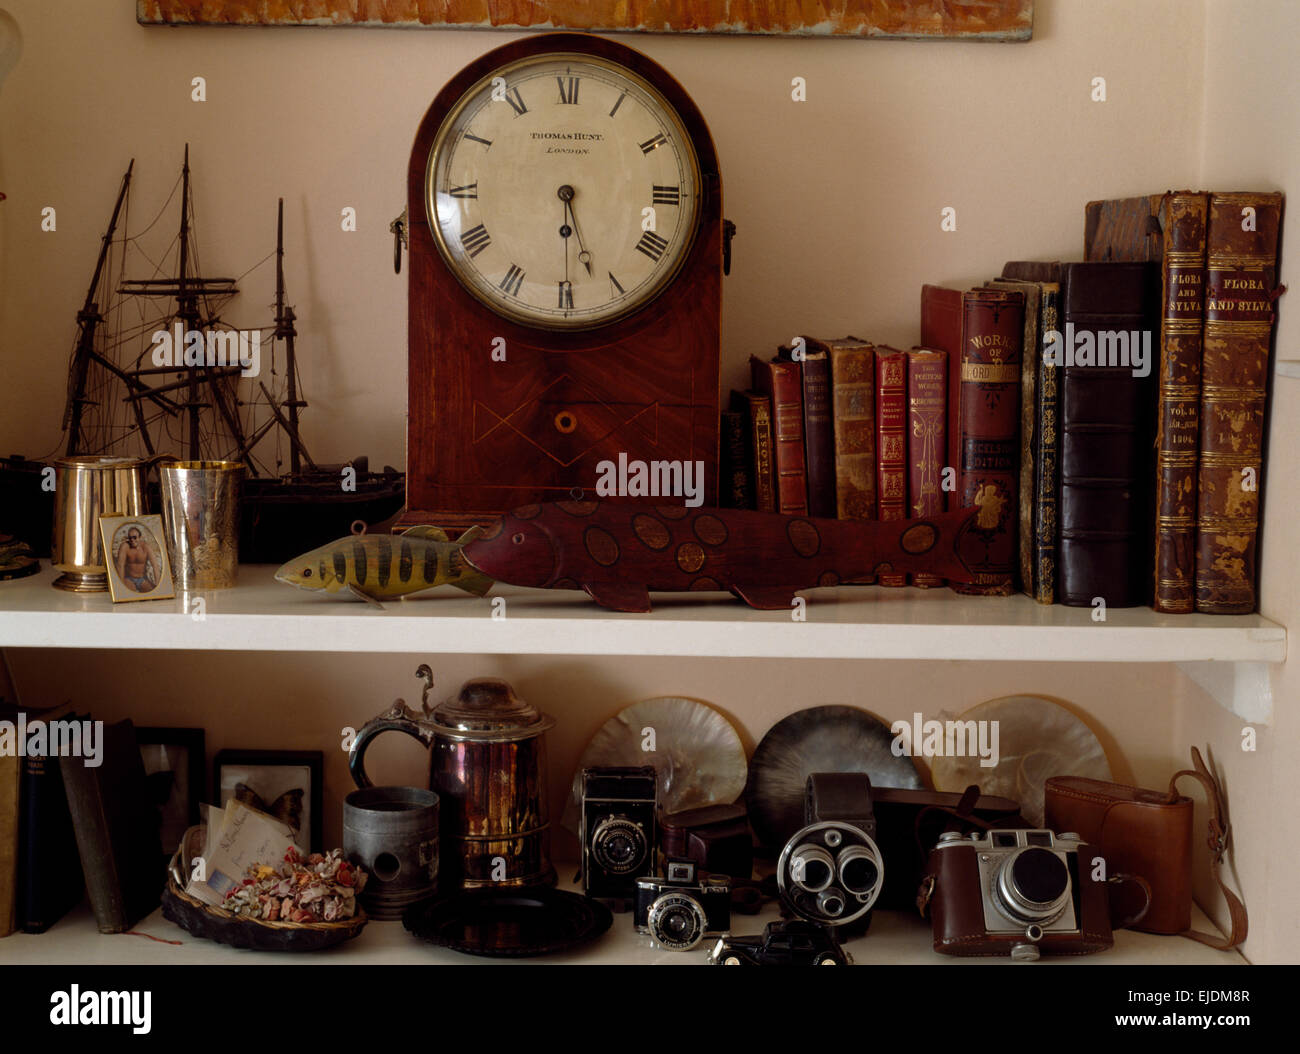 Antique clock and old leather bound books on shelves with vintage cameras - Stock Image